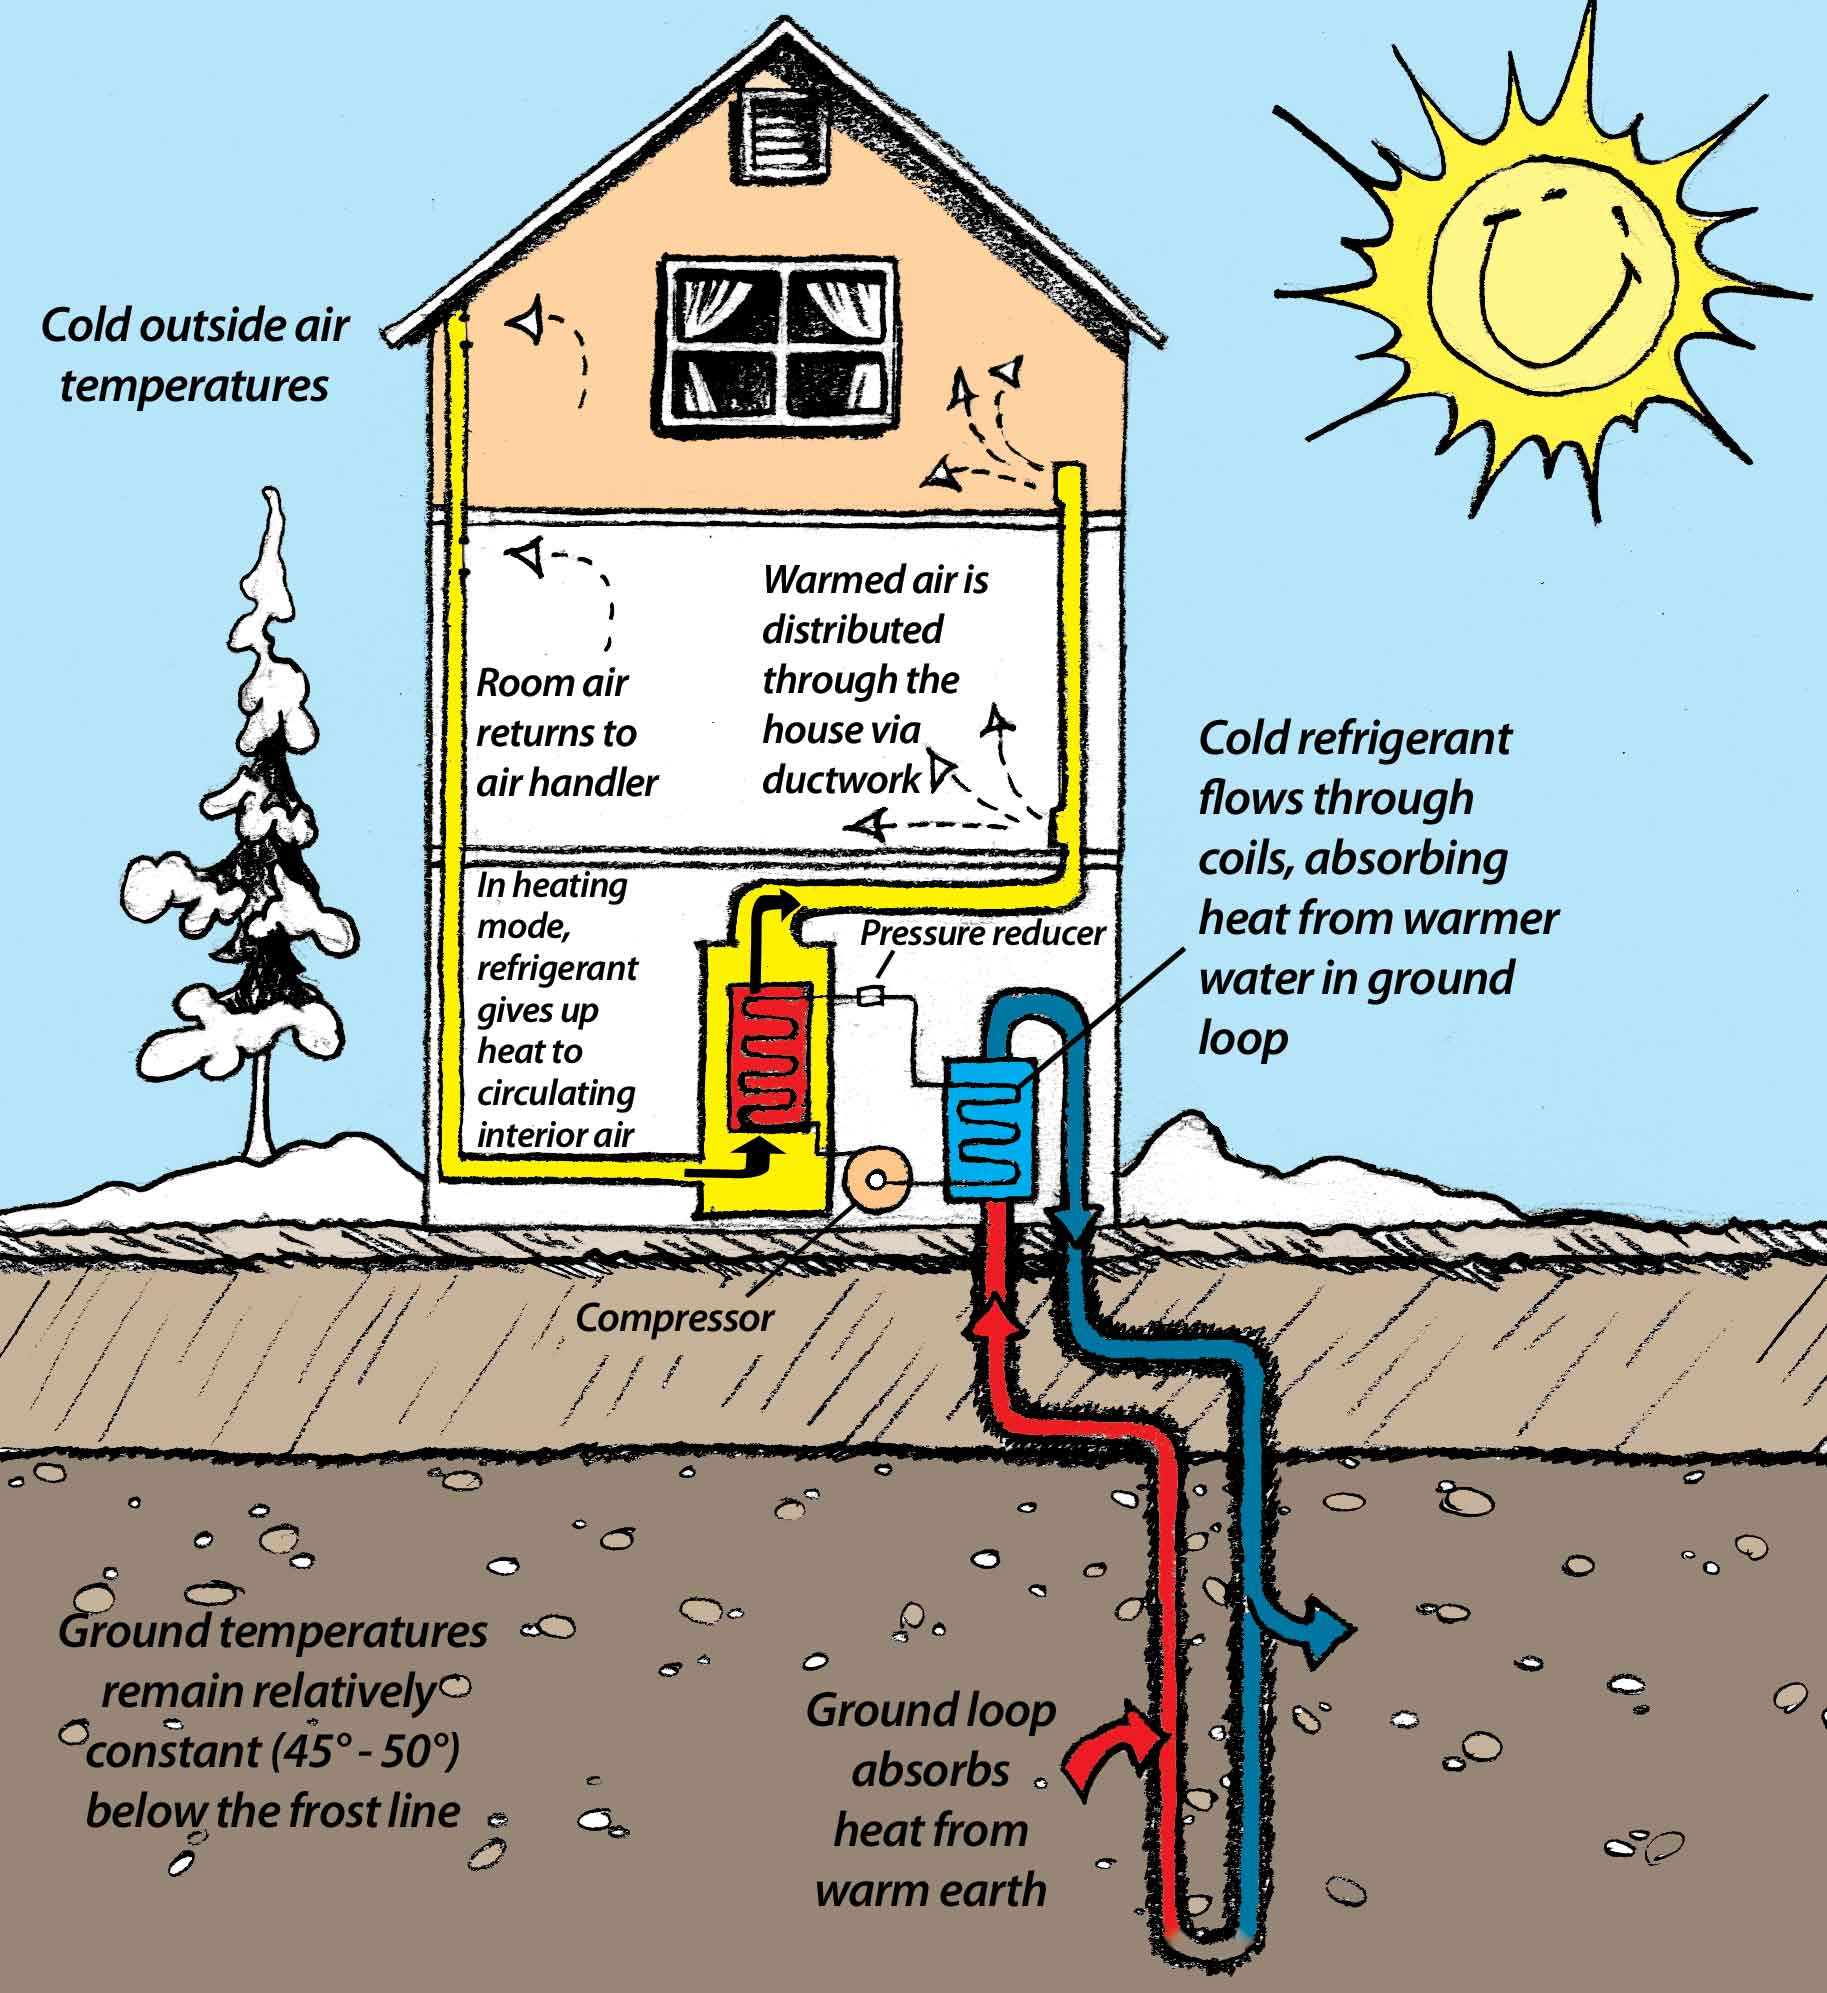 Illustration explaining how GeoExchange works. Shows a cutaway house and ground with pipes running underground. A smiling sun is seen above and to the right of the house. Snow covers the ground and a tree outside the house. Text shown outside the house: Cold outside air temperatures. Cold refrigerant flows through coils, absorbing heat from warmer water in ground loop. Ground loop absorbs heat from warm earth. Ground temperatures remain relatively constant (45° – 50° F) below the frost line. Text shown inside the house: Warmed air is distributed through the house via ductwork. In heating mode, refrigerant gives up heat to circulating interior air. Room air returns to air handler.